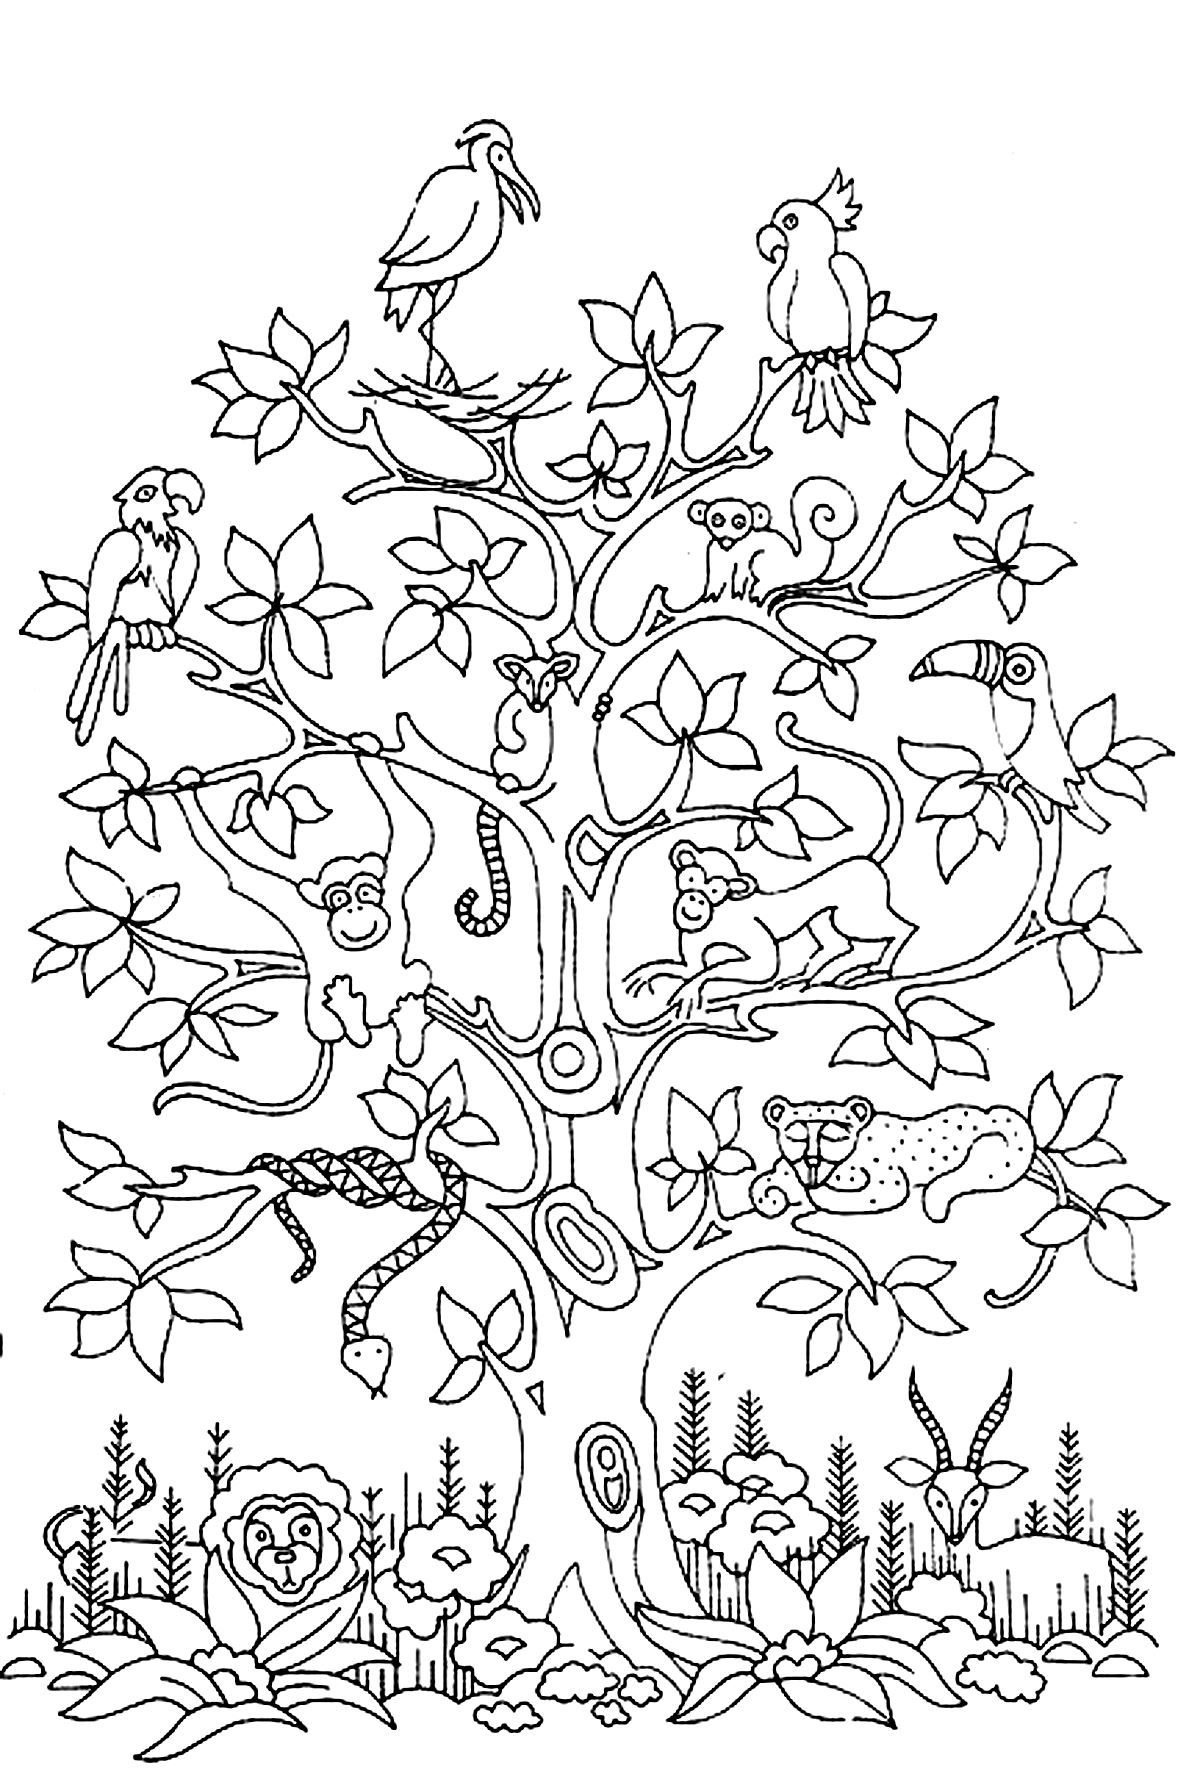 Free Coloring Page Coloring-adult-difficult-tress-birds